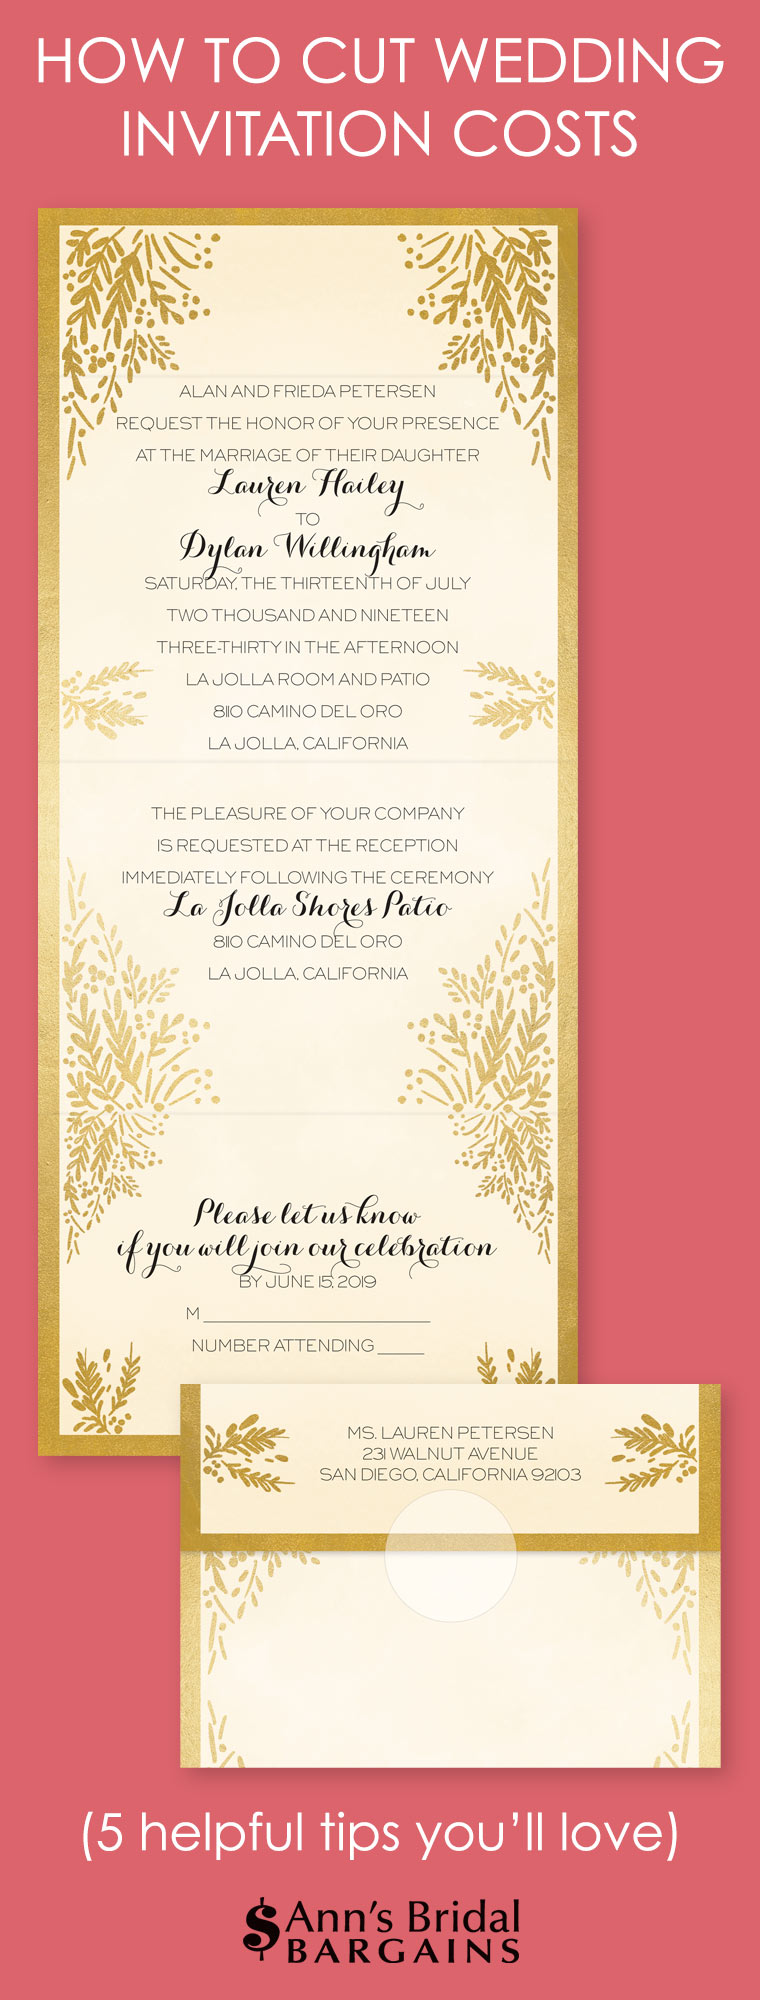 How To Cut Wedding Invitation Costs Ann 39 S Bridal Bargains: wedding invitation cost